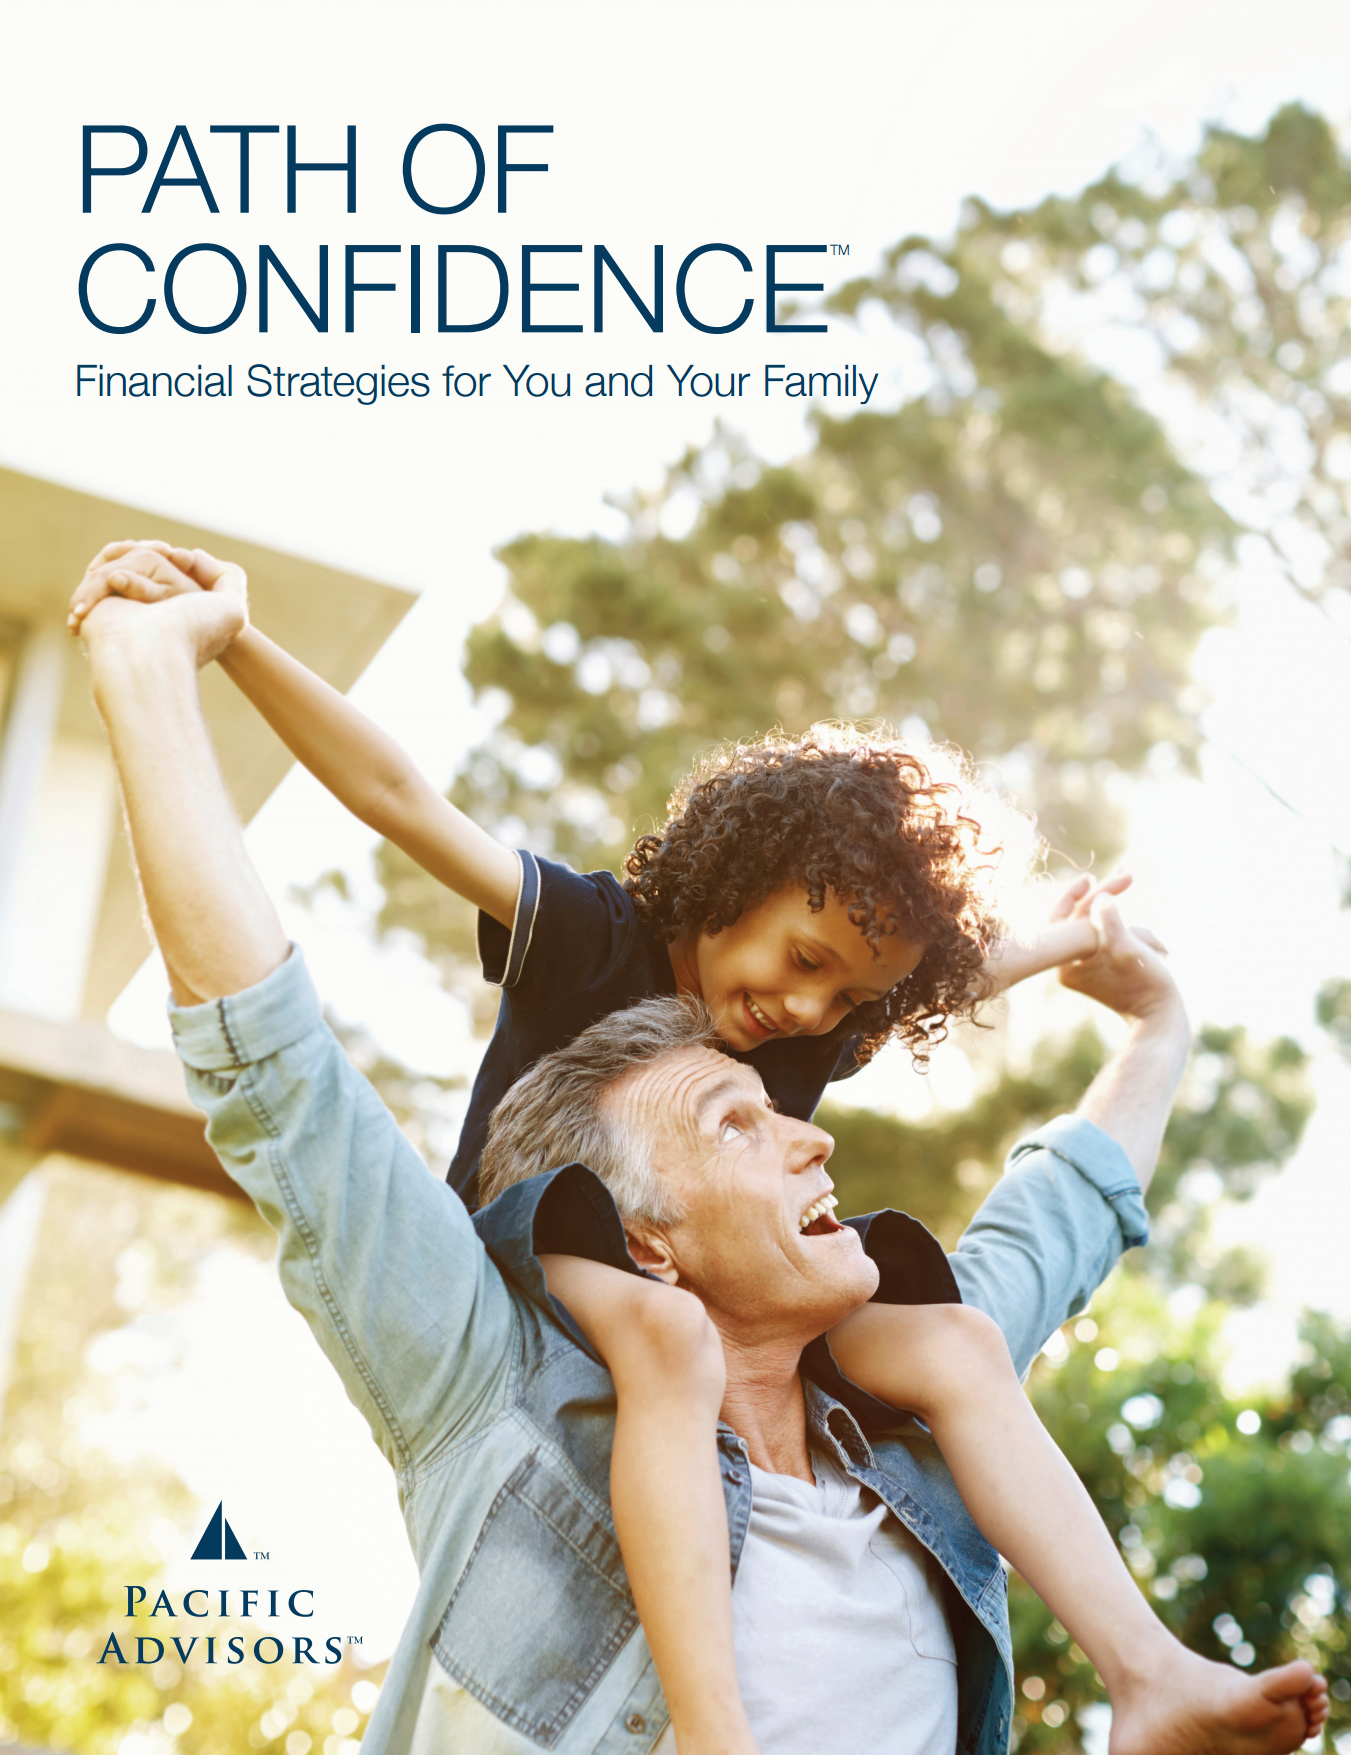 Path of Confidence Brochure cover - April 2016